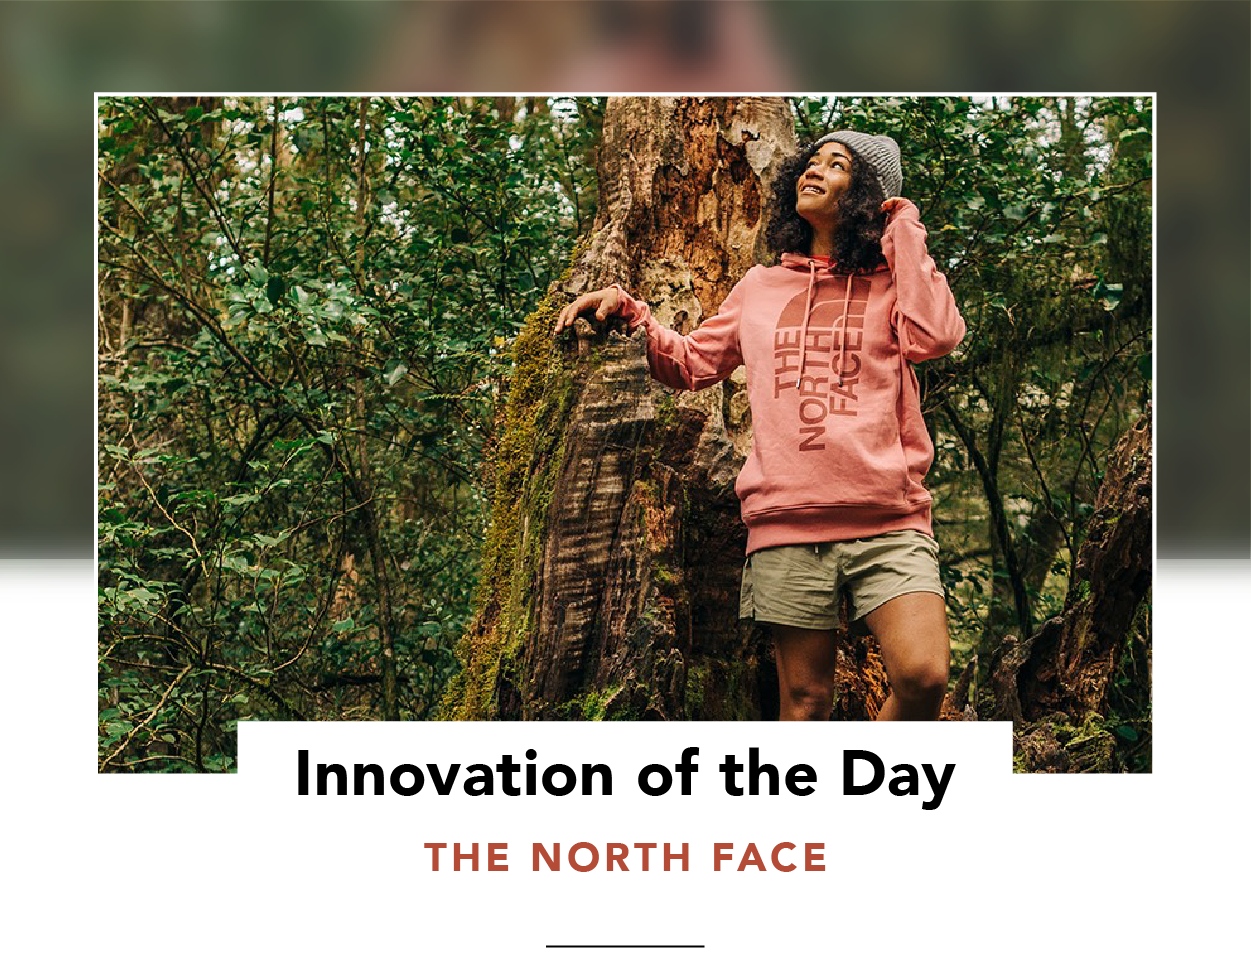 Woman in a forest, wearing a sweater by The North Face